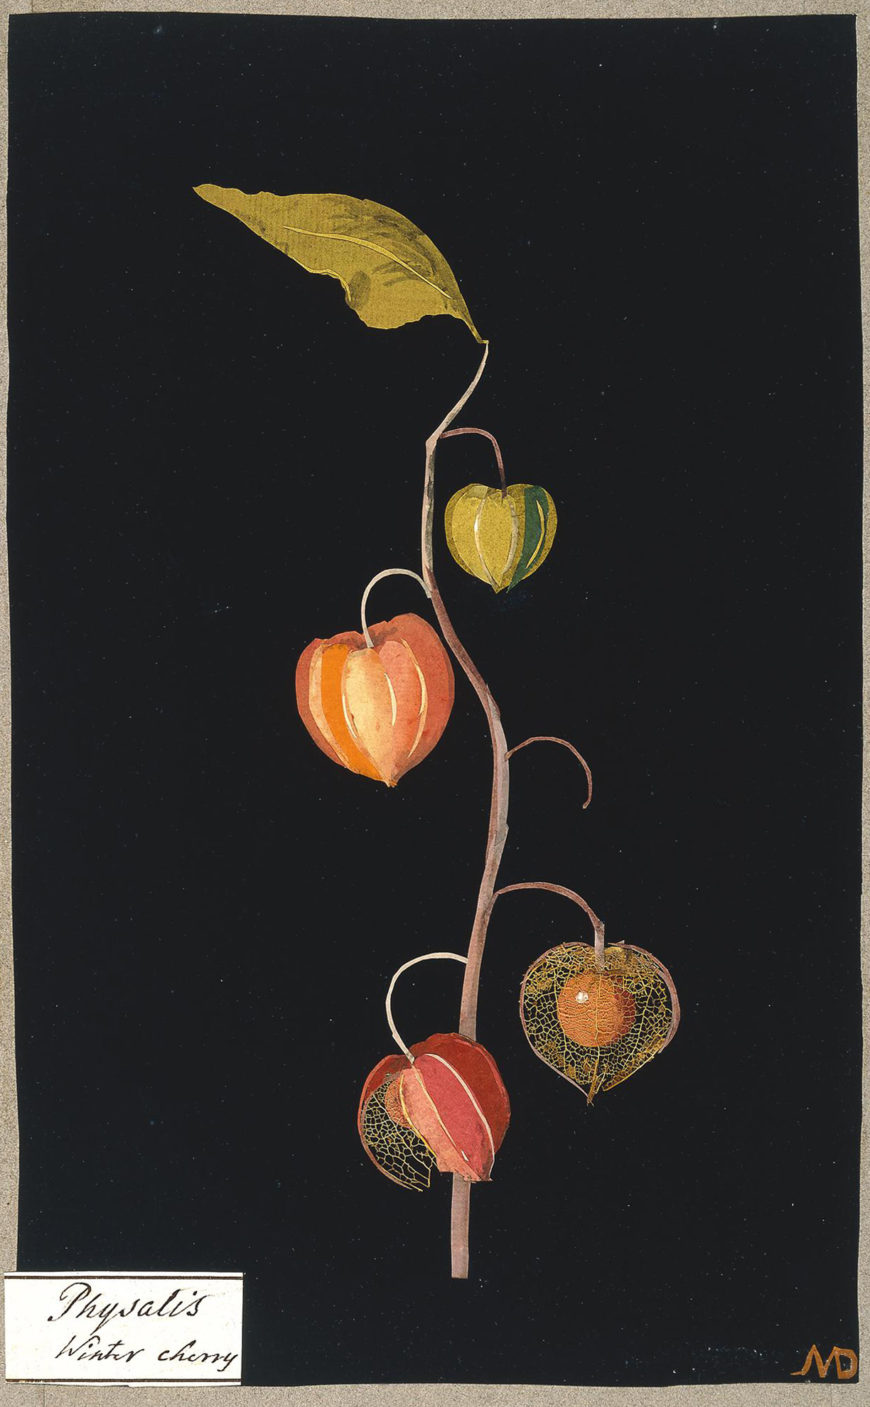 Mary Delany,Physalis, Winter Cherry, 1772-88, paper collage, England 29.1 x 17.7 cm (© The Trustees of the British Museum)